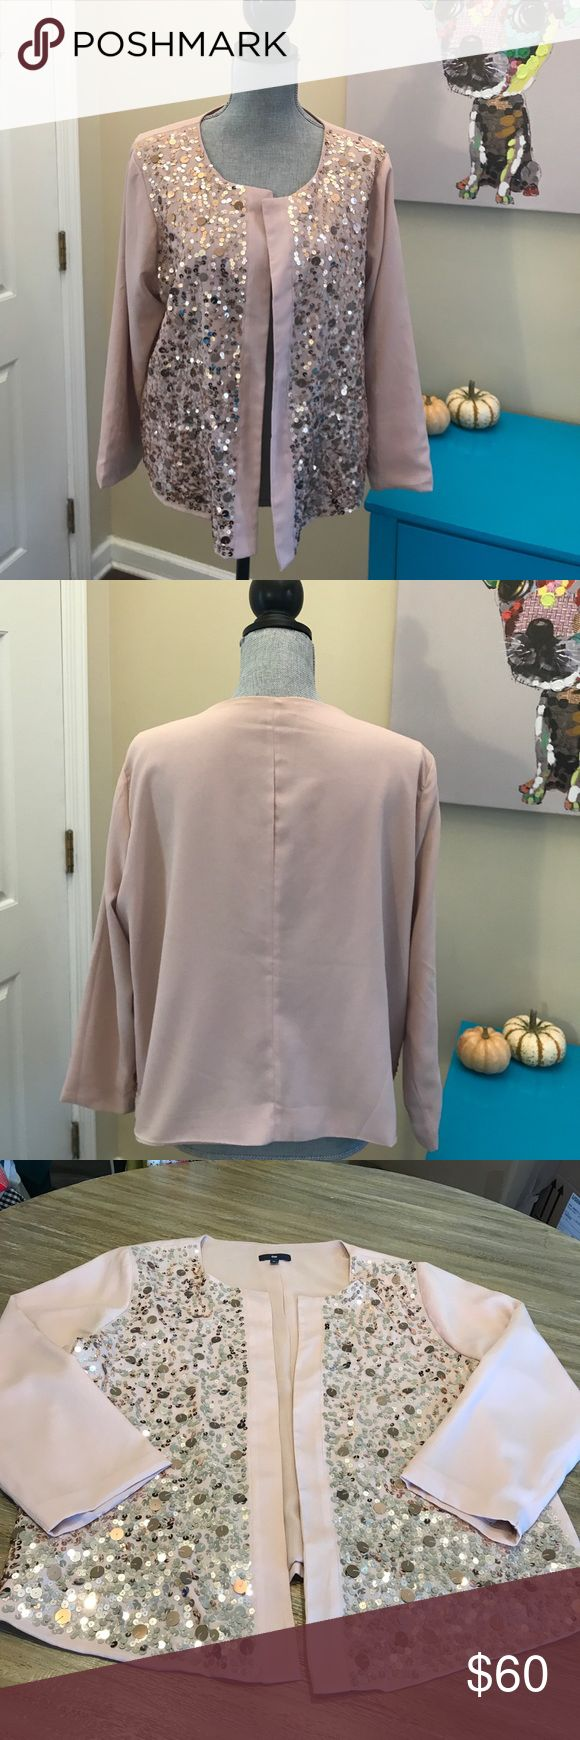 Sequin Blazer!!! Open style light pink blazer with rose gold sequins!! Gorgeous!!! Worn and washed once!!!! In excellent condition!!! Perfect for a holiday party or a night on the town!! GAP Jackets & Coats Blazers